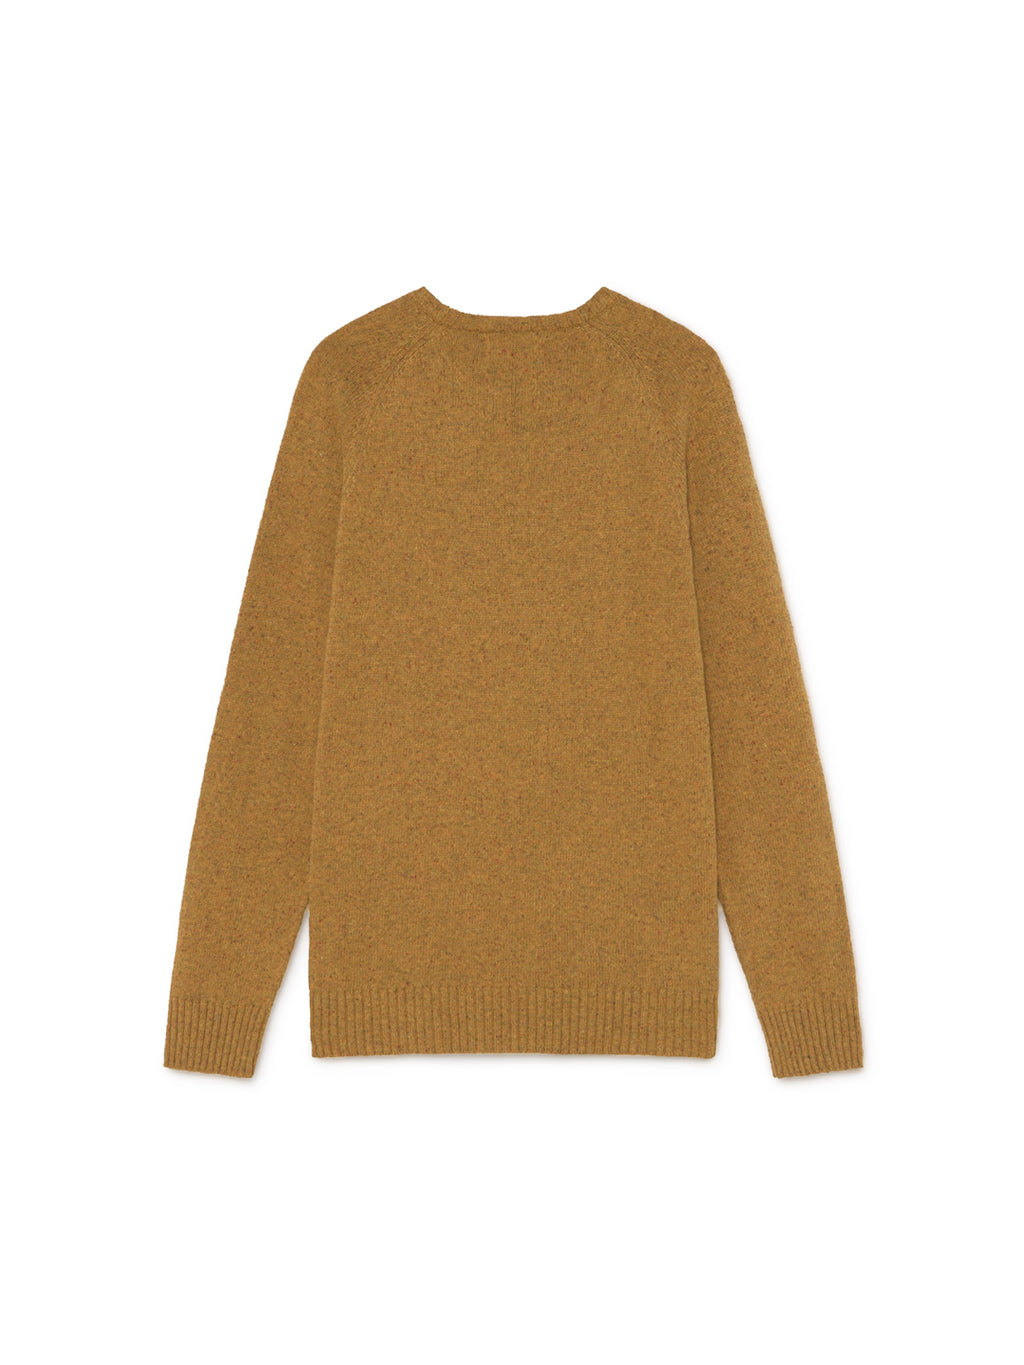 TWOTHIRDS Mens Knit: Dring - Mustard back